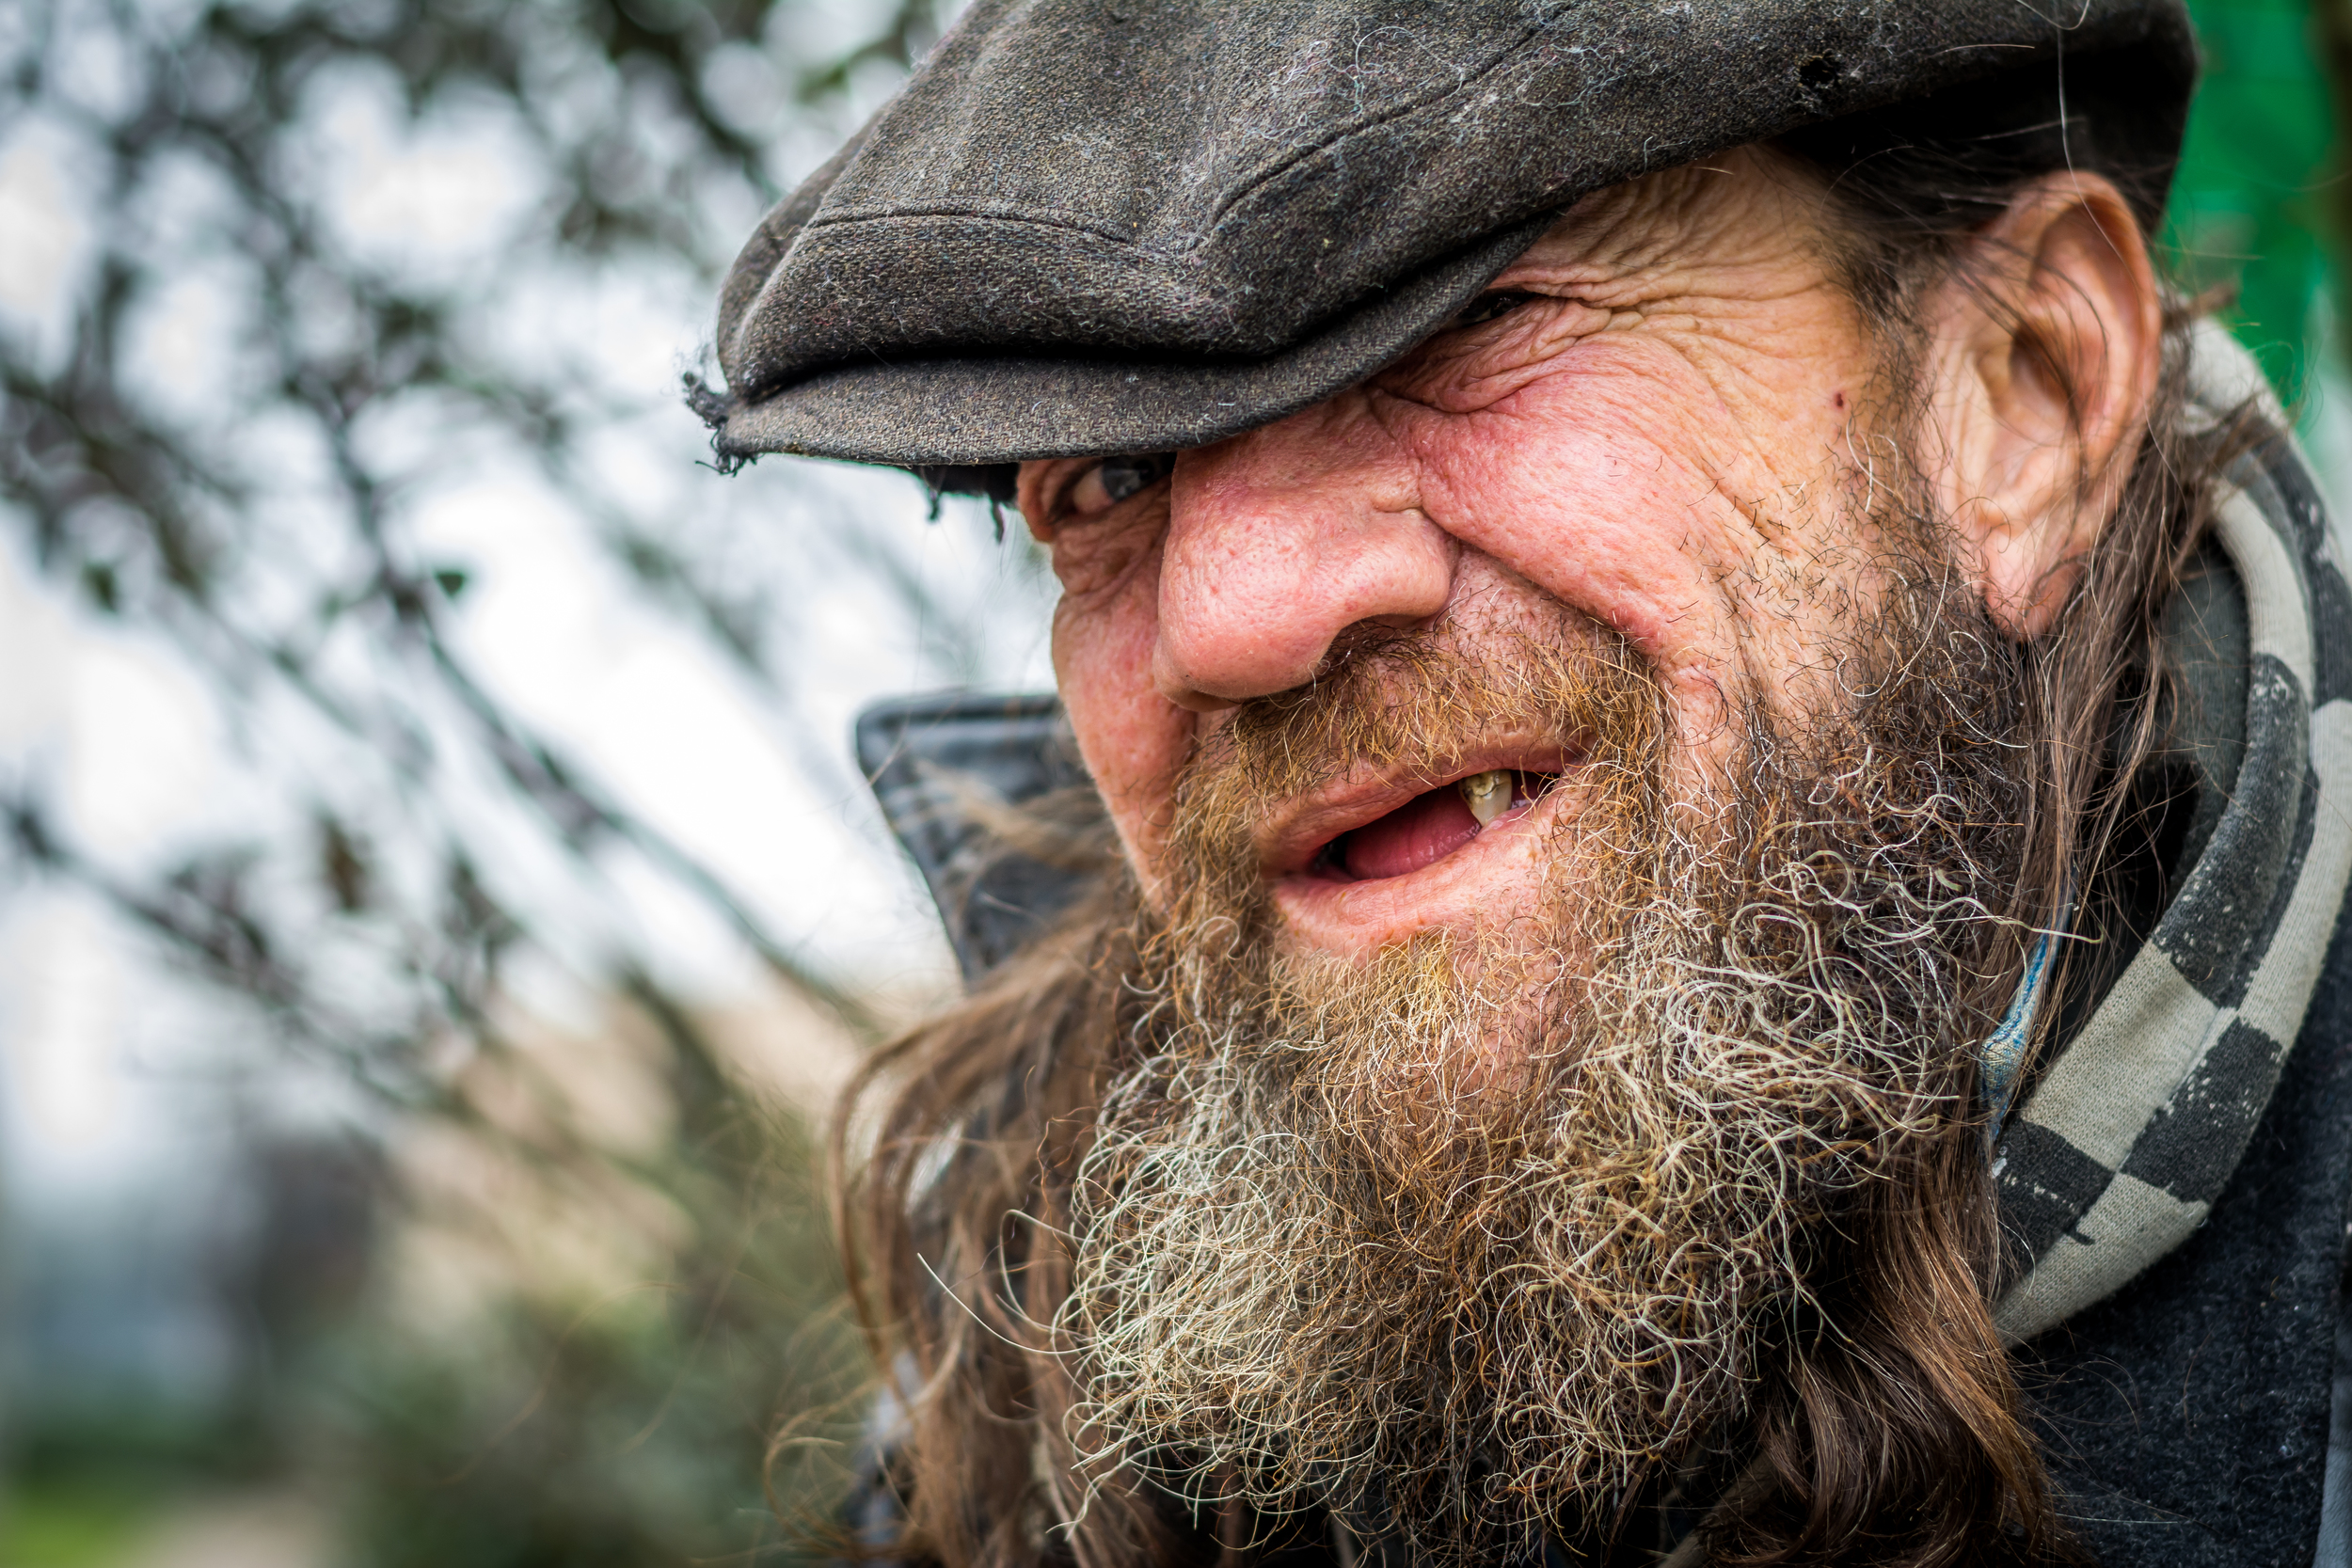 Hope for the homeless - wes fisher photography - portrait project - web.jpg